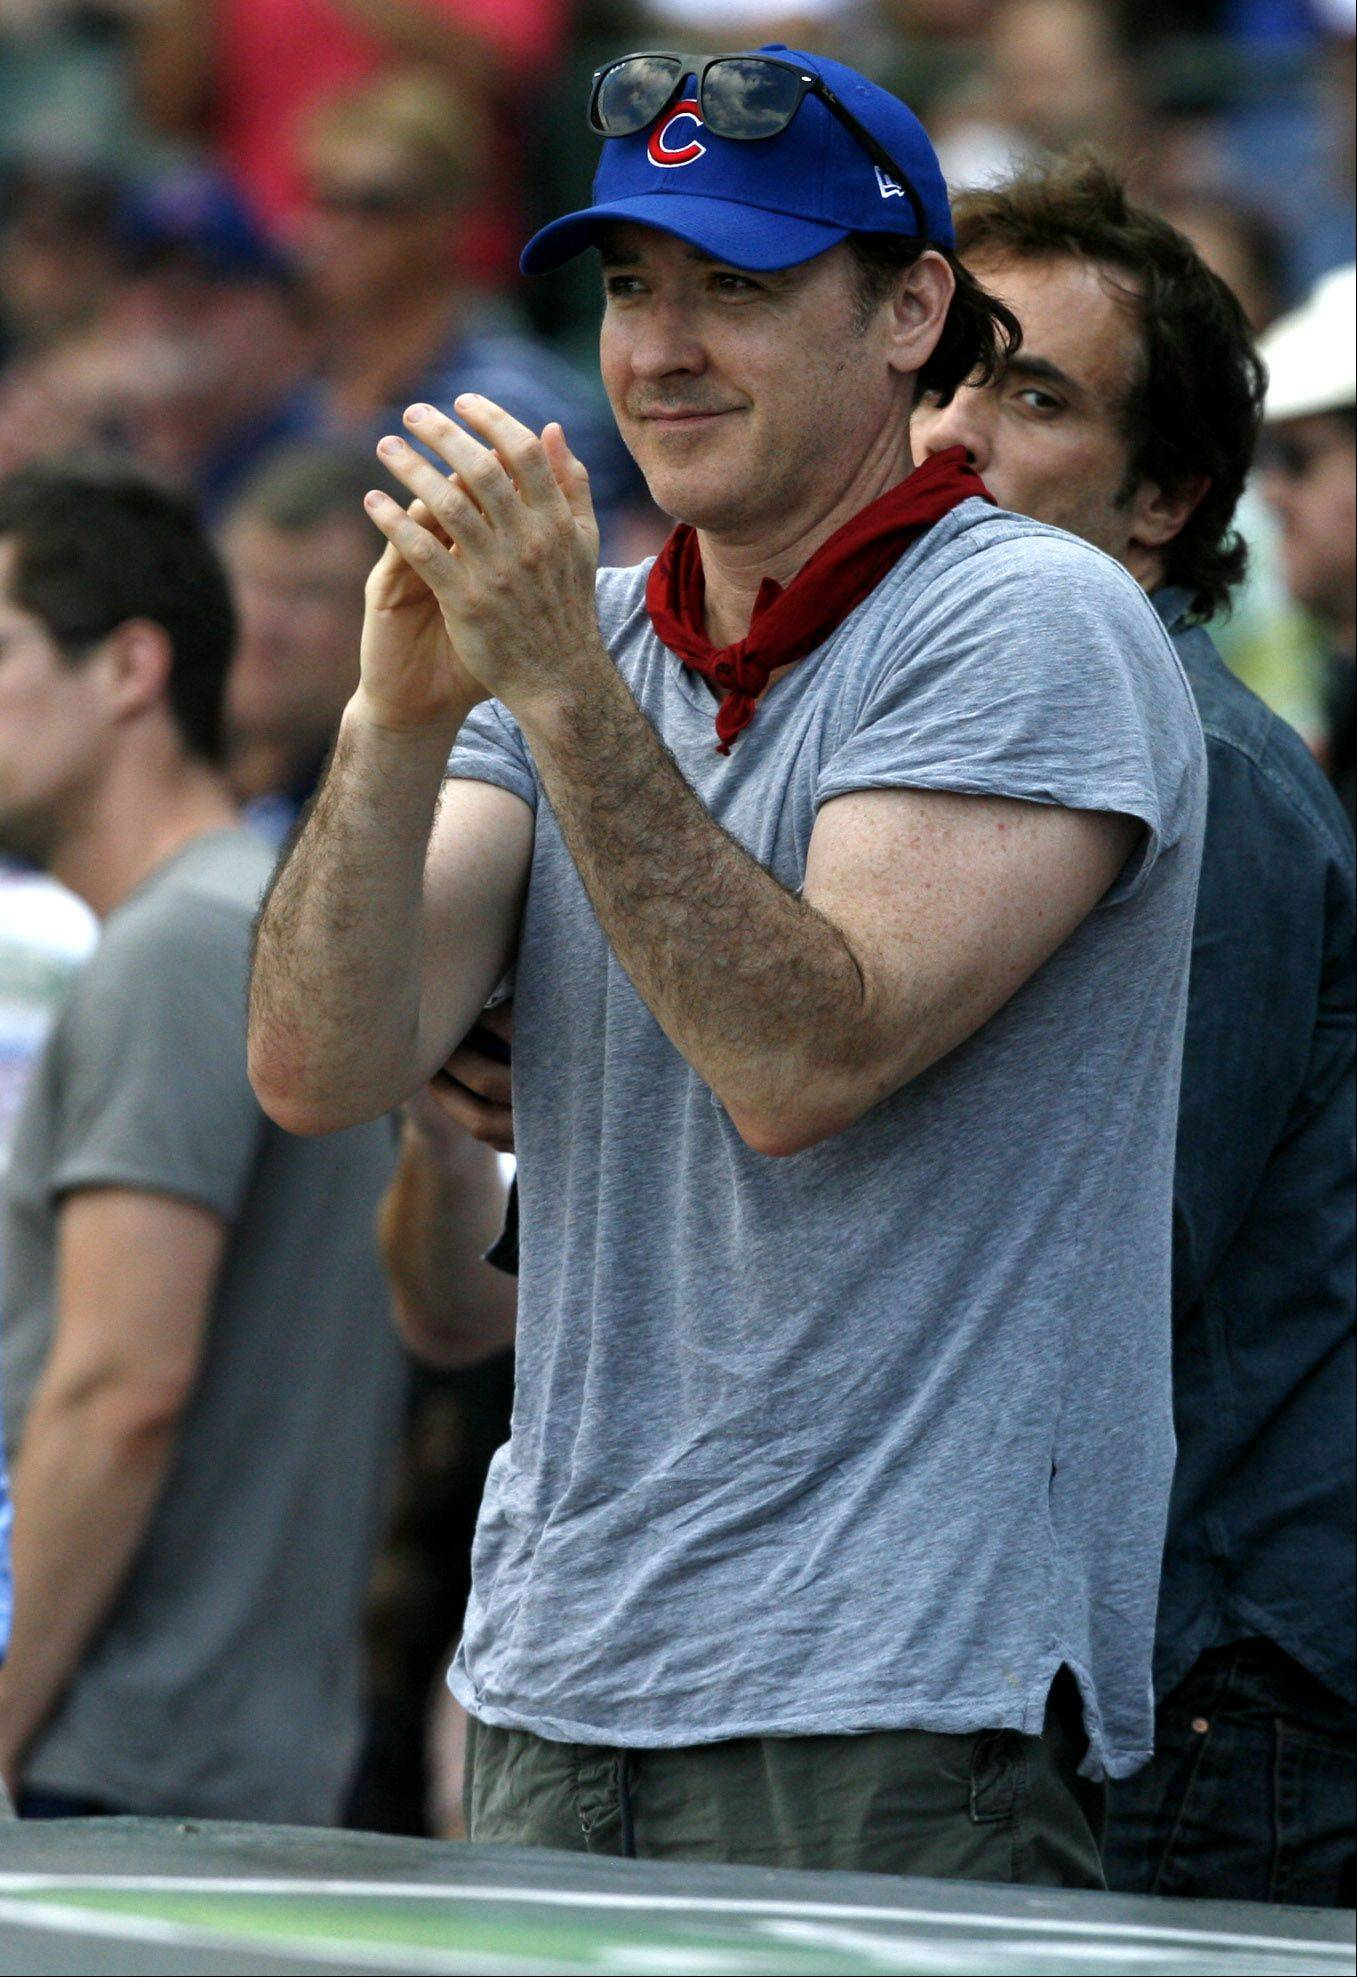 Actor John Cusack gives the Cubs a hand during the ninth inning in 1-0 lose over White Sox at Wrigley Field on Saturday.